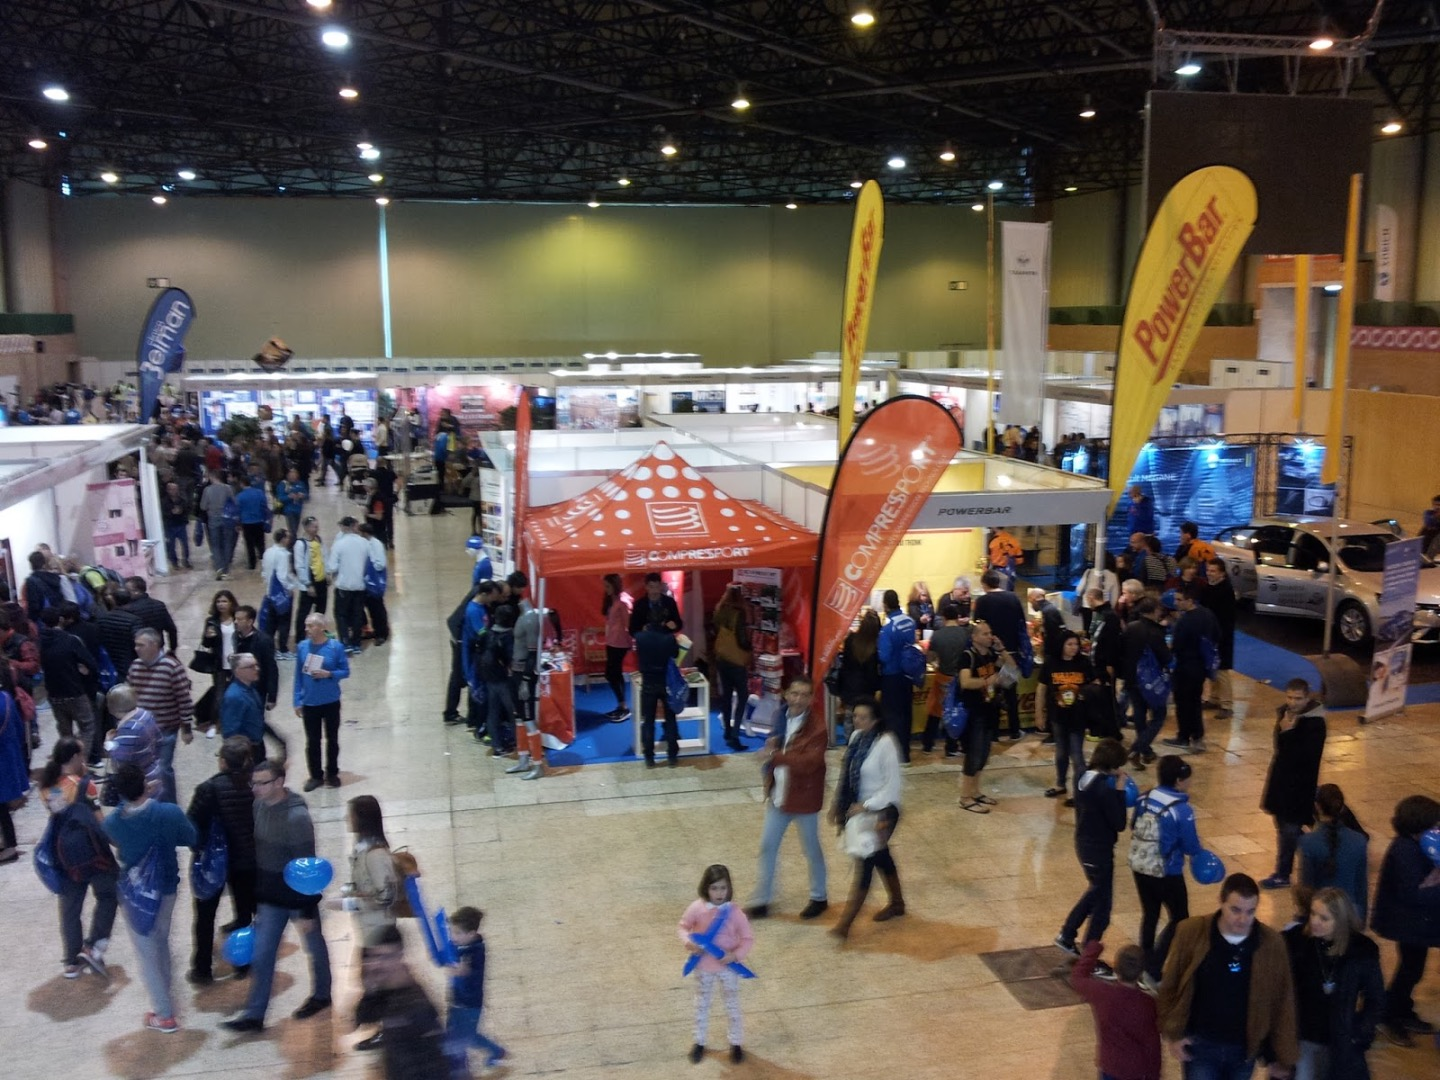 FBR will be at the Marathon Expo in Seville